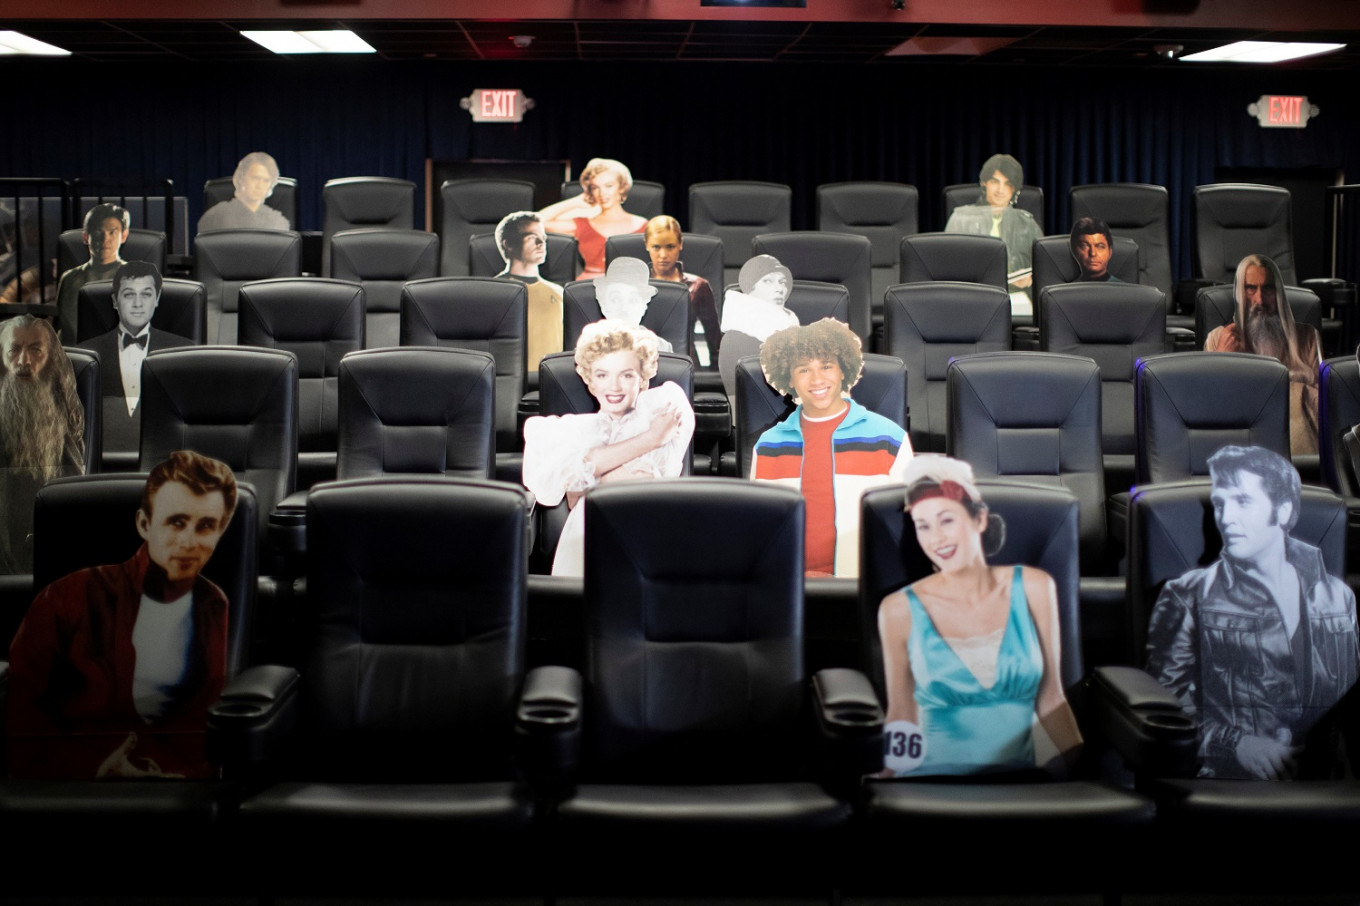 US movie theaters prepare to switch the lights back on, but hurdles remain